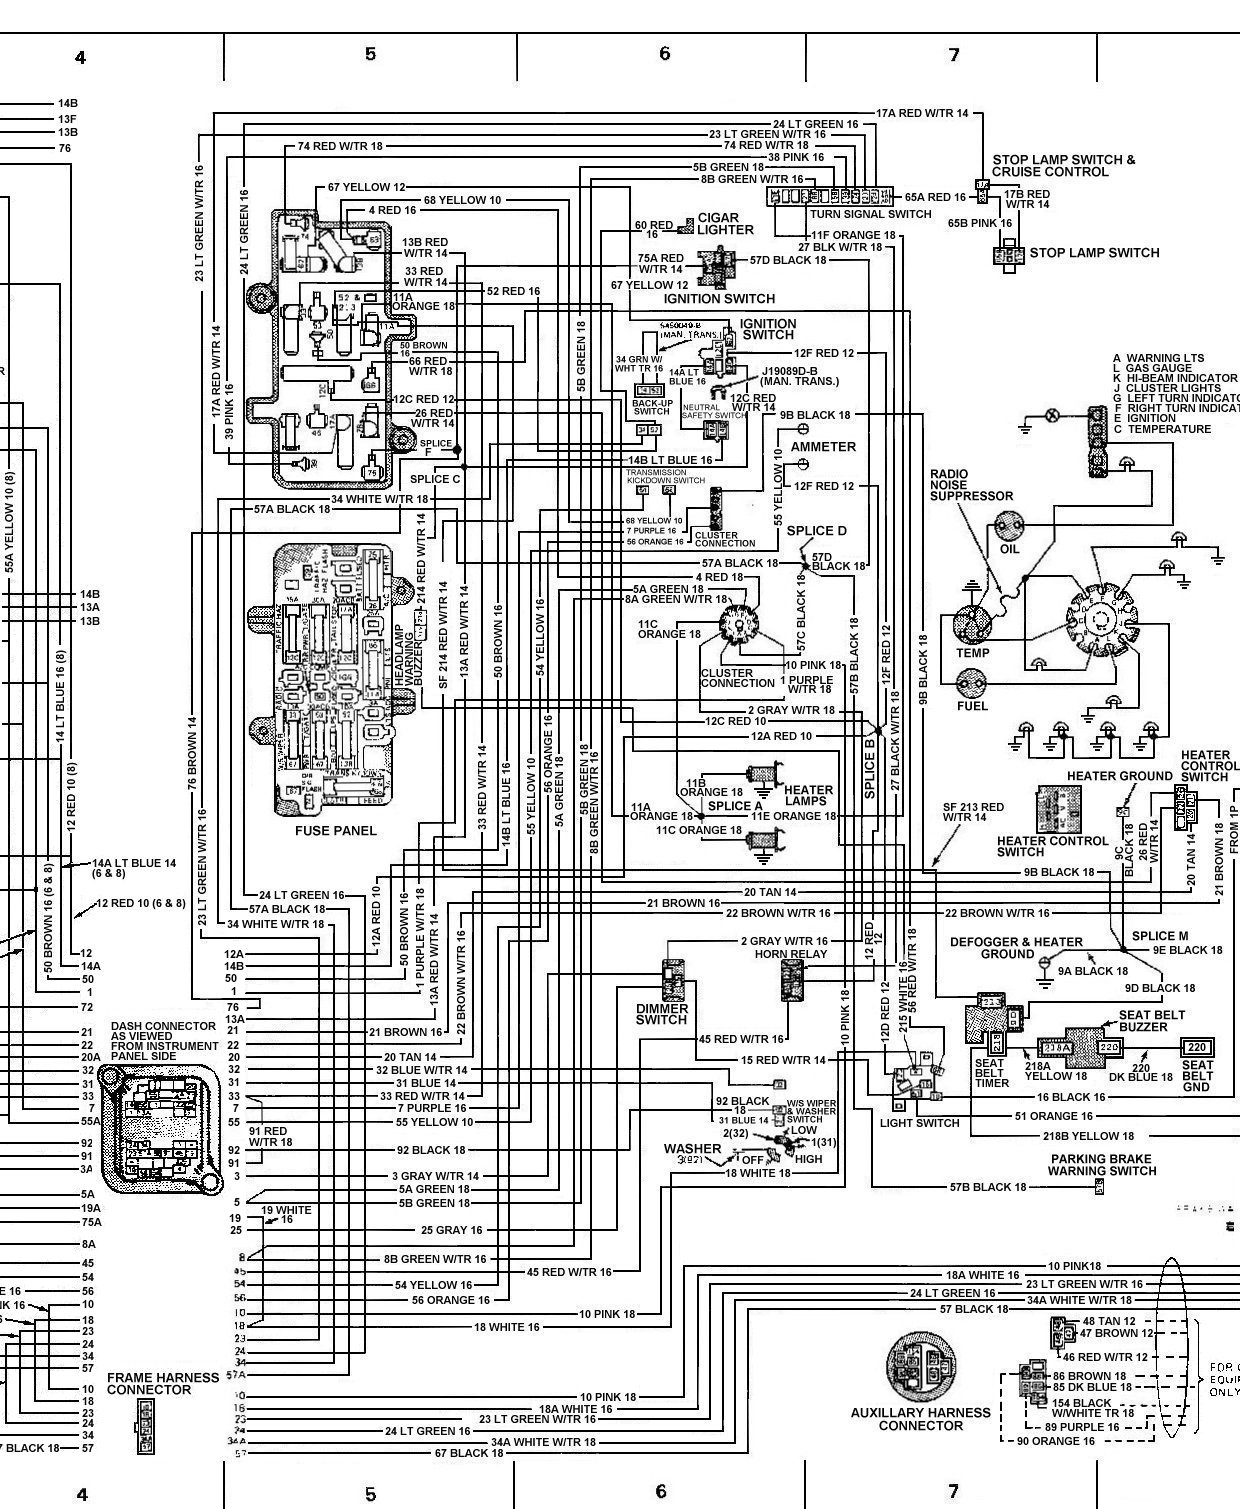 419397 07 Kia Sportage Wiring Diagram on hummer h2 vent valve location